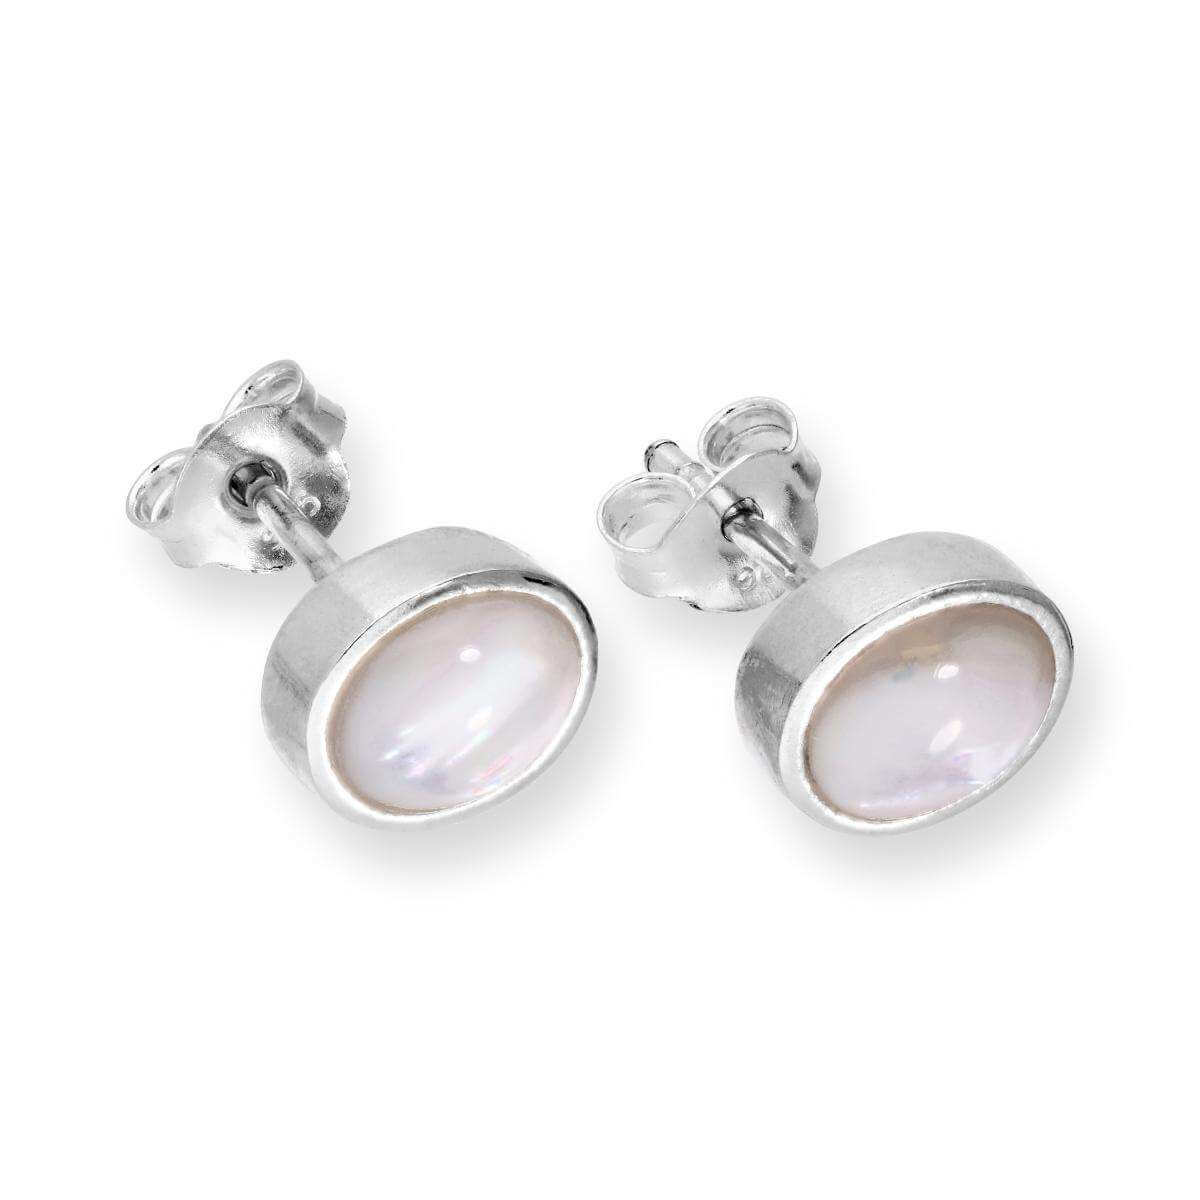 Sterling Silver & Mother of Pearl Round Stud Earrings